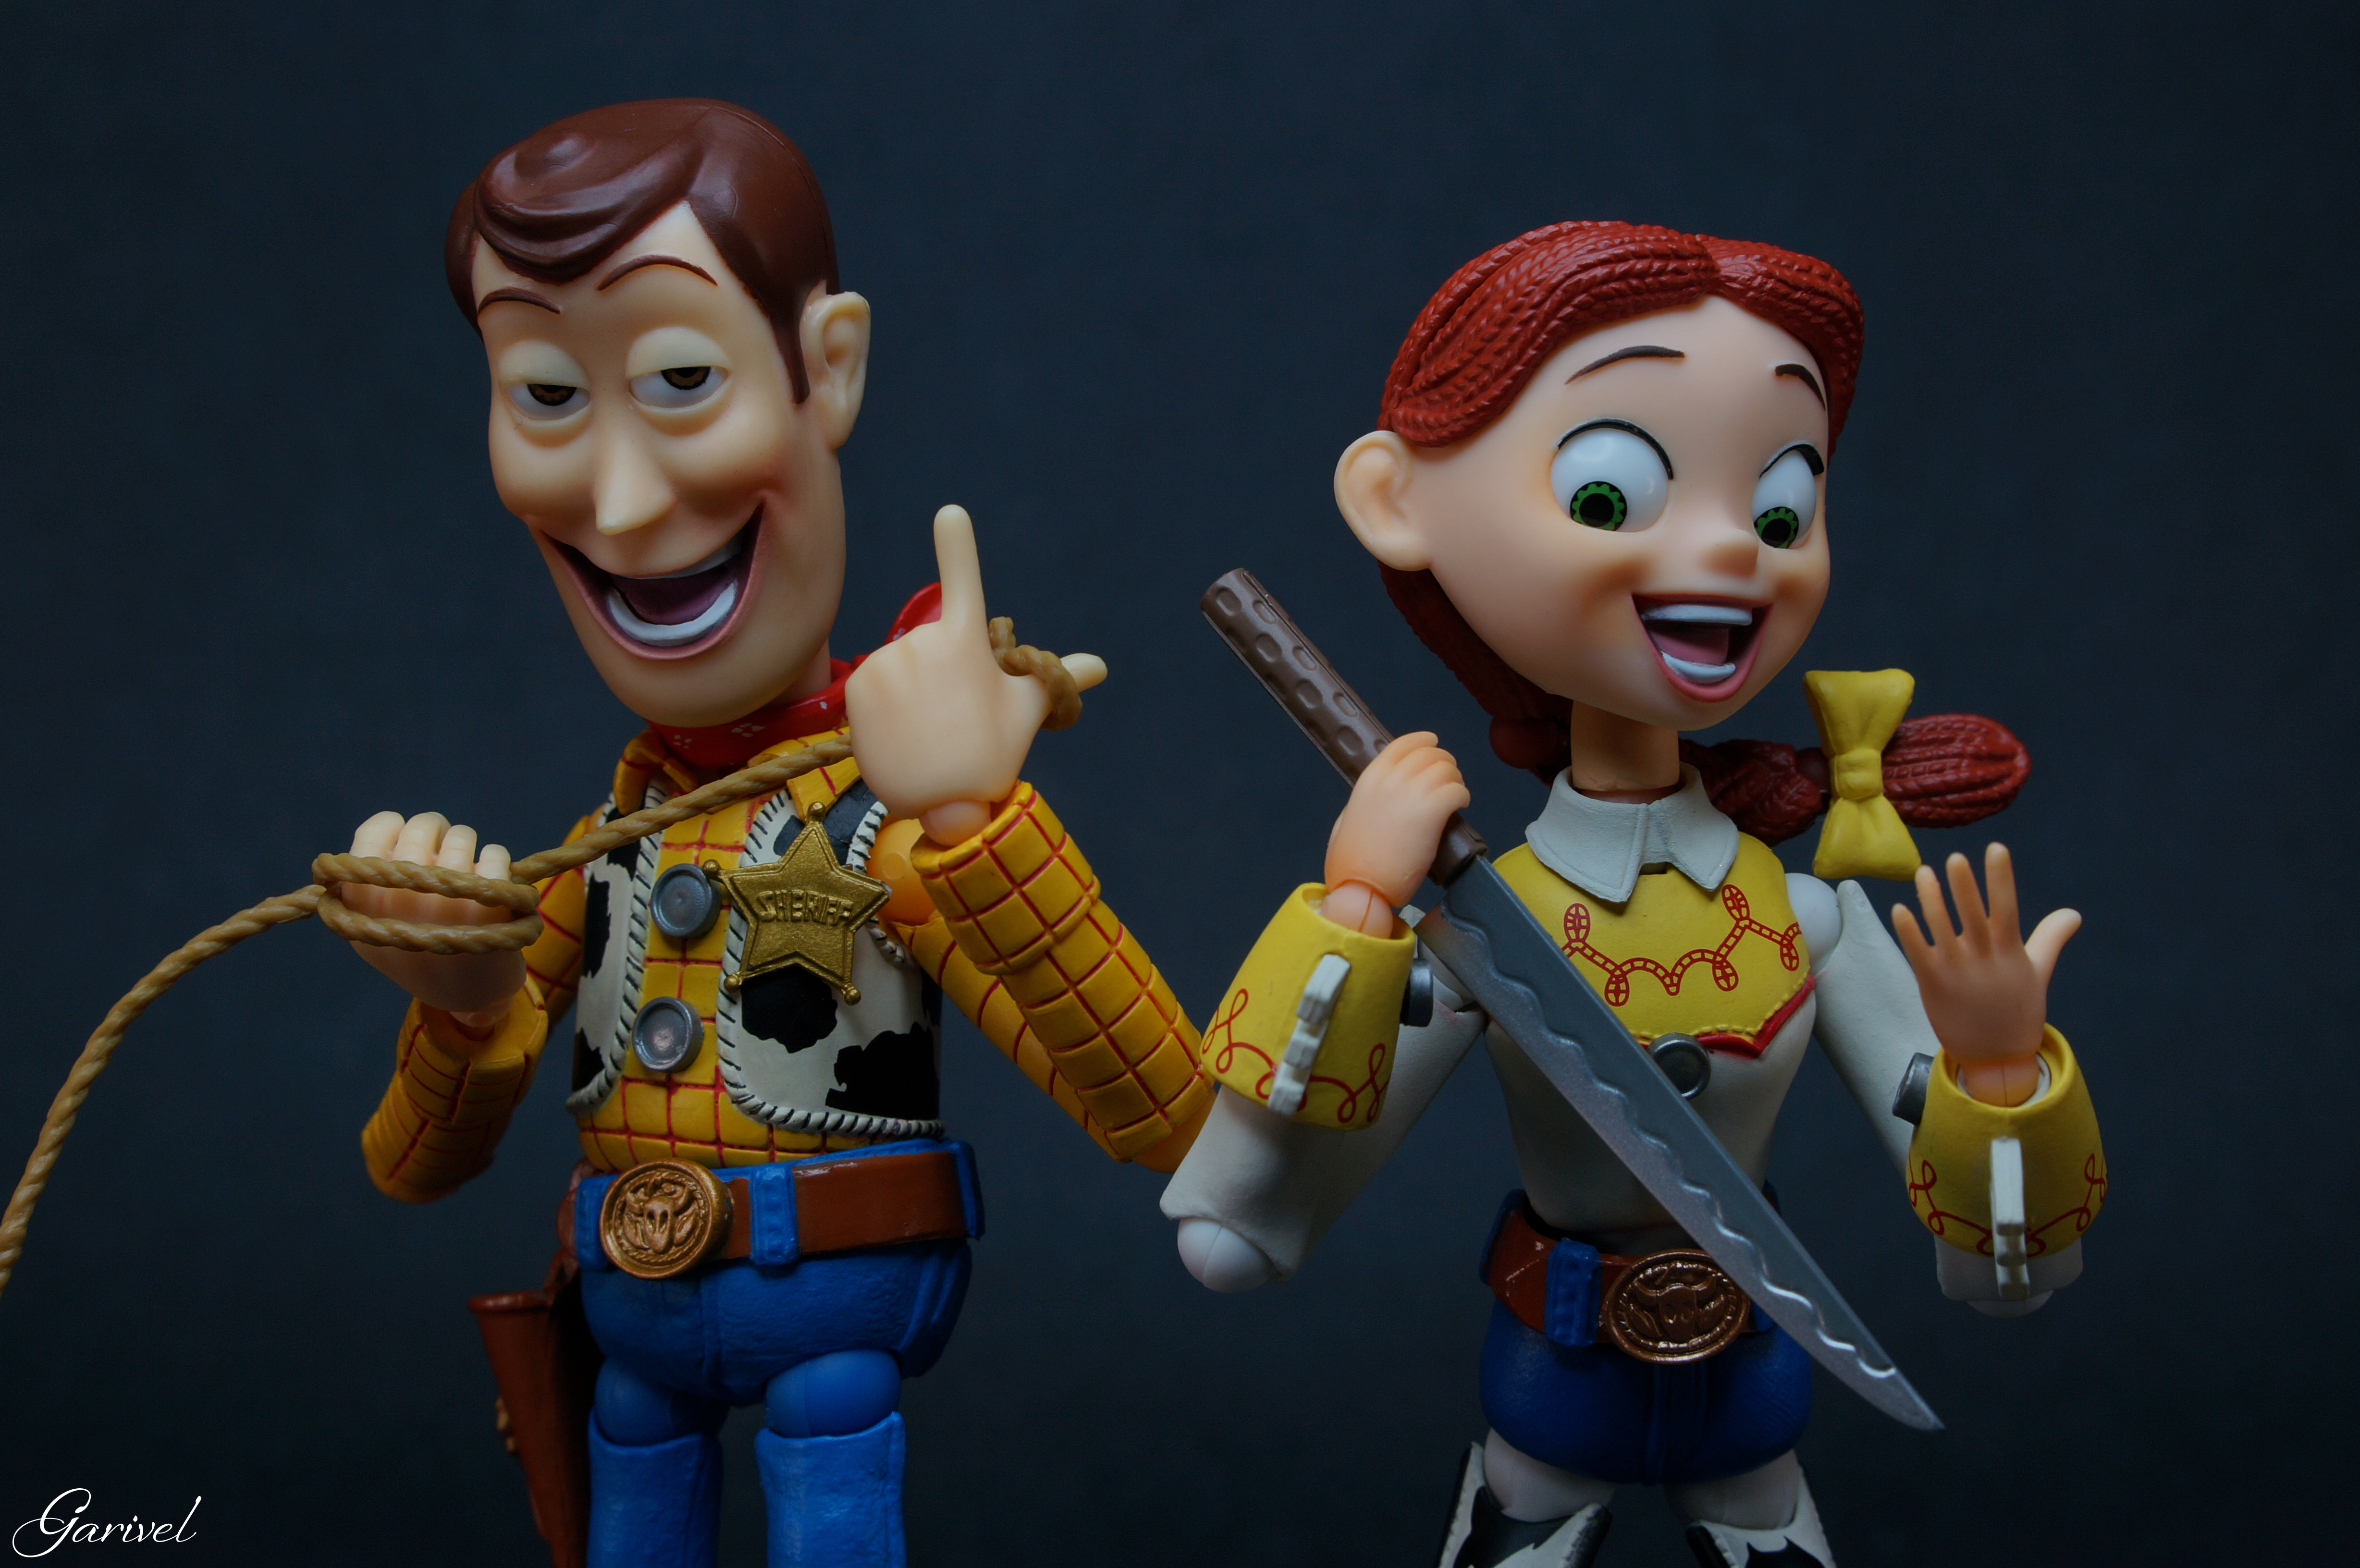 Toy Story Of Terror by Garivel